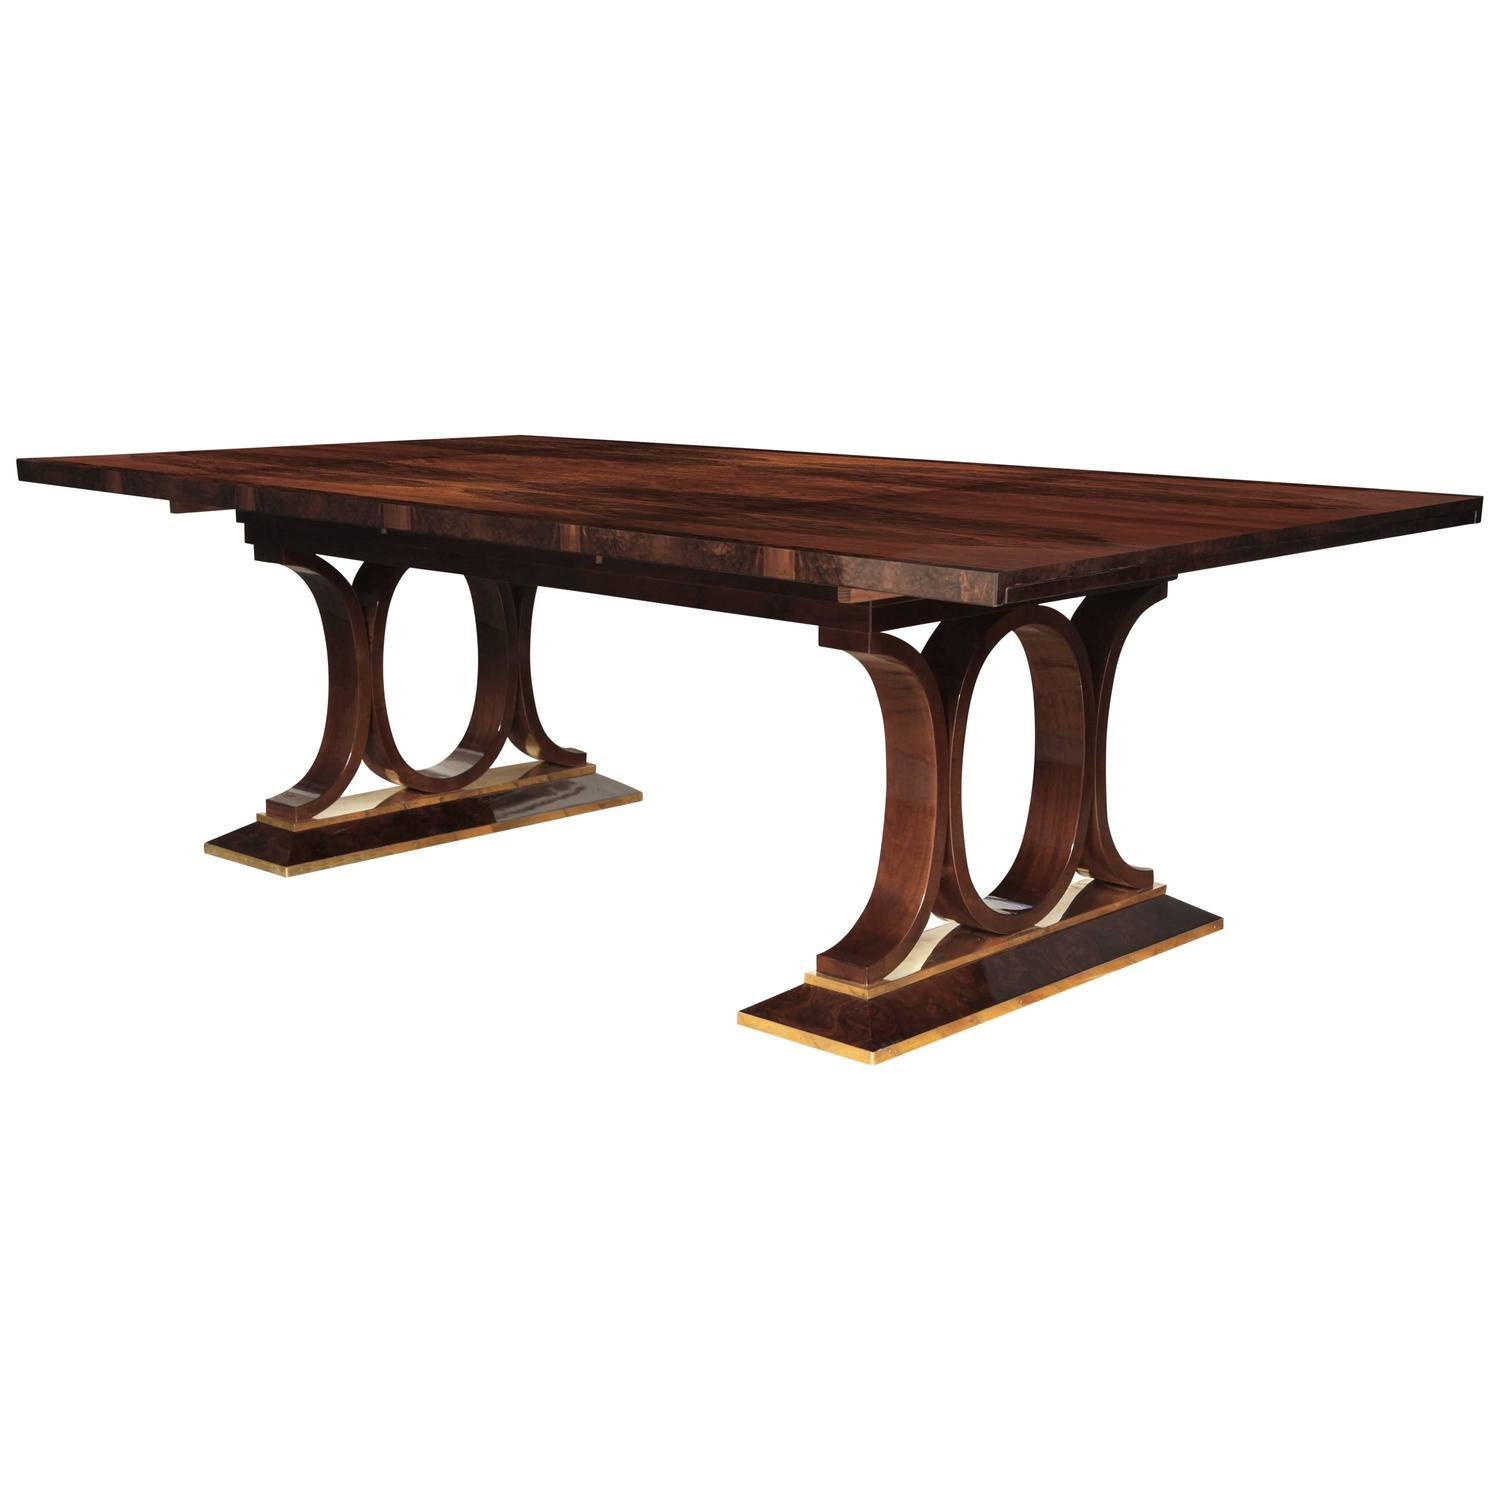 Superb Art Deco Dining Table At 1stdibs